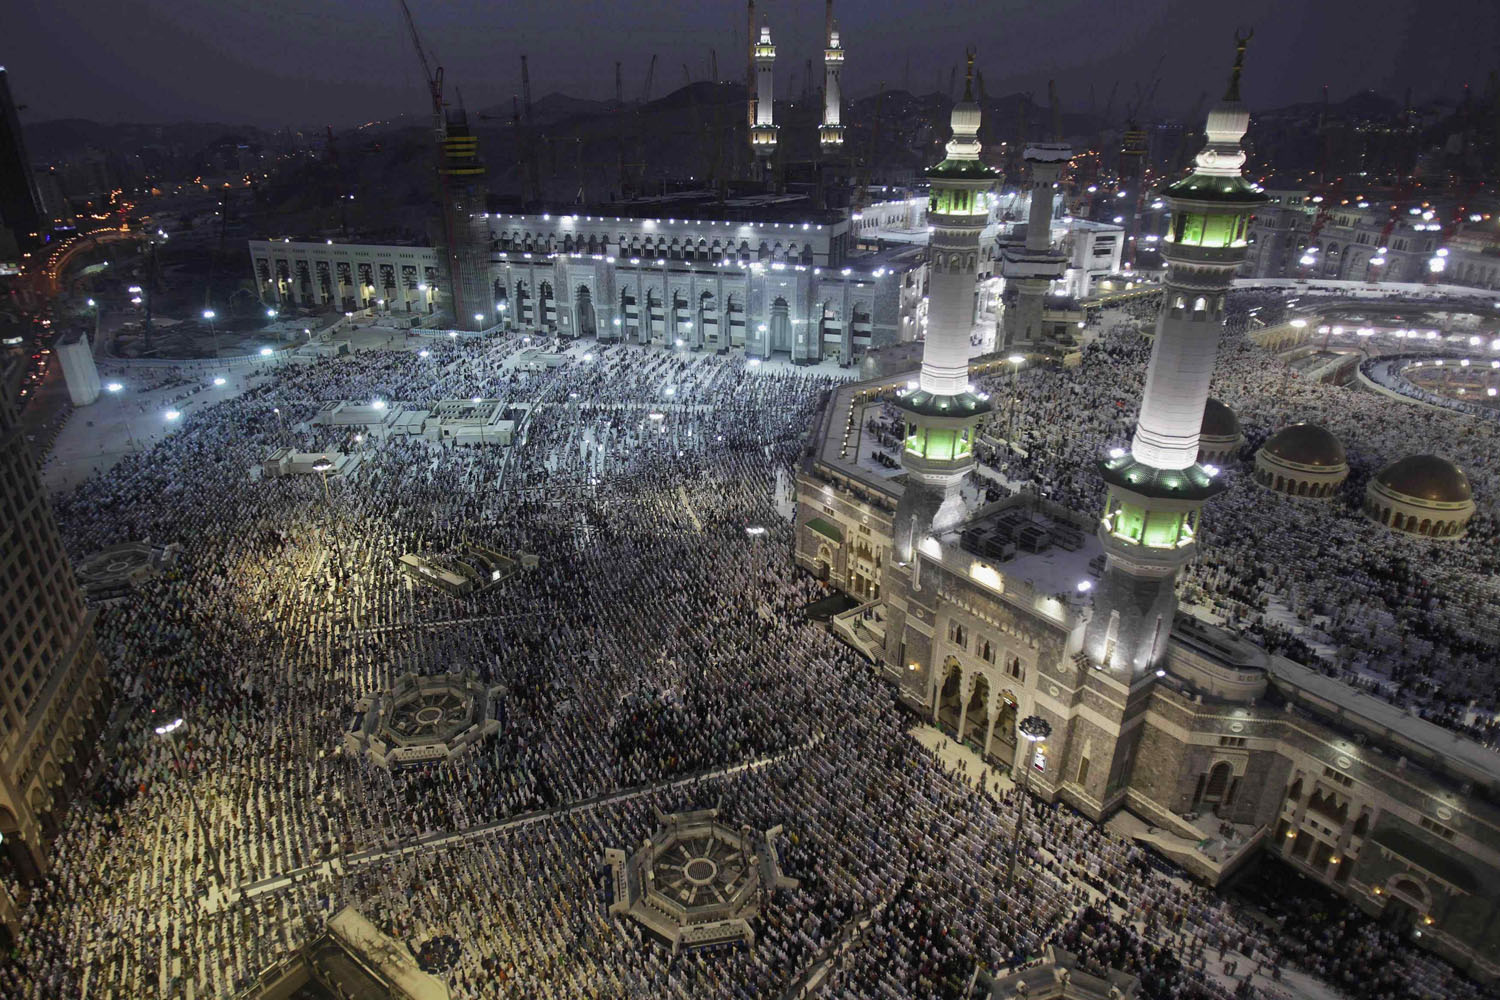 Oct. 10, 2013. Muslim pilgrims pray at the Grand mosque in the holy city of Mecca, ahead of the annual haj pilgrimage.